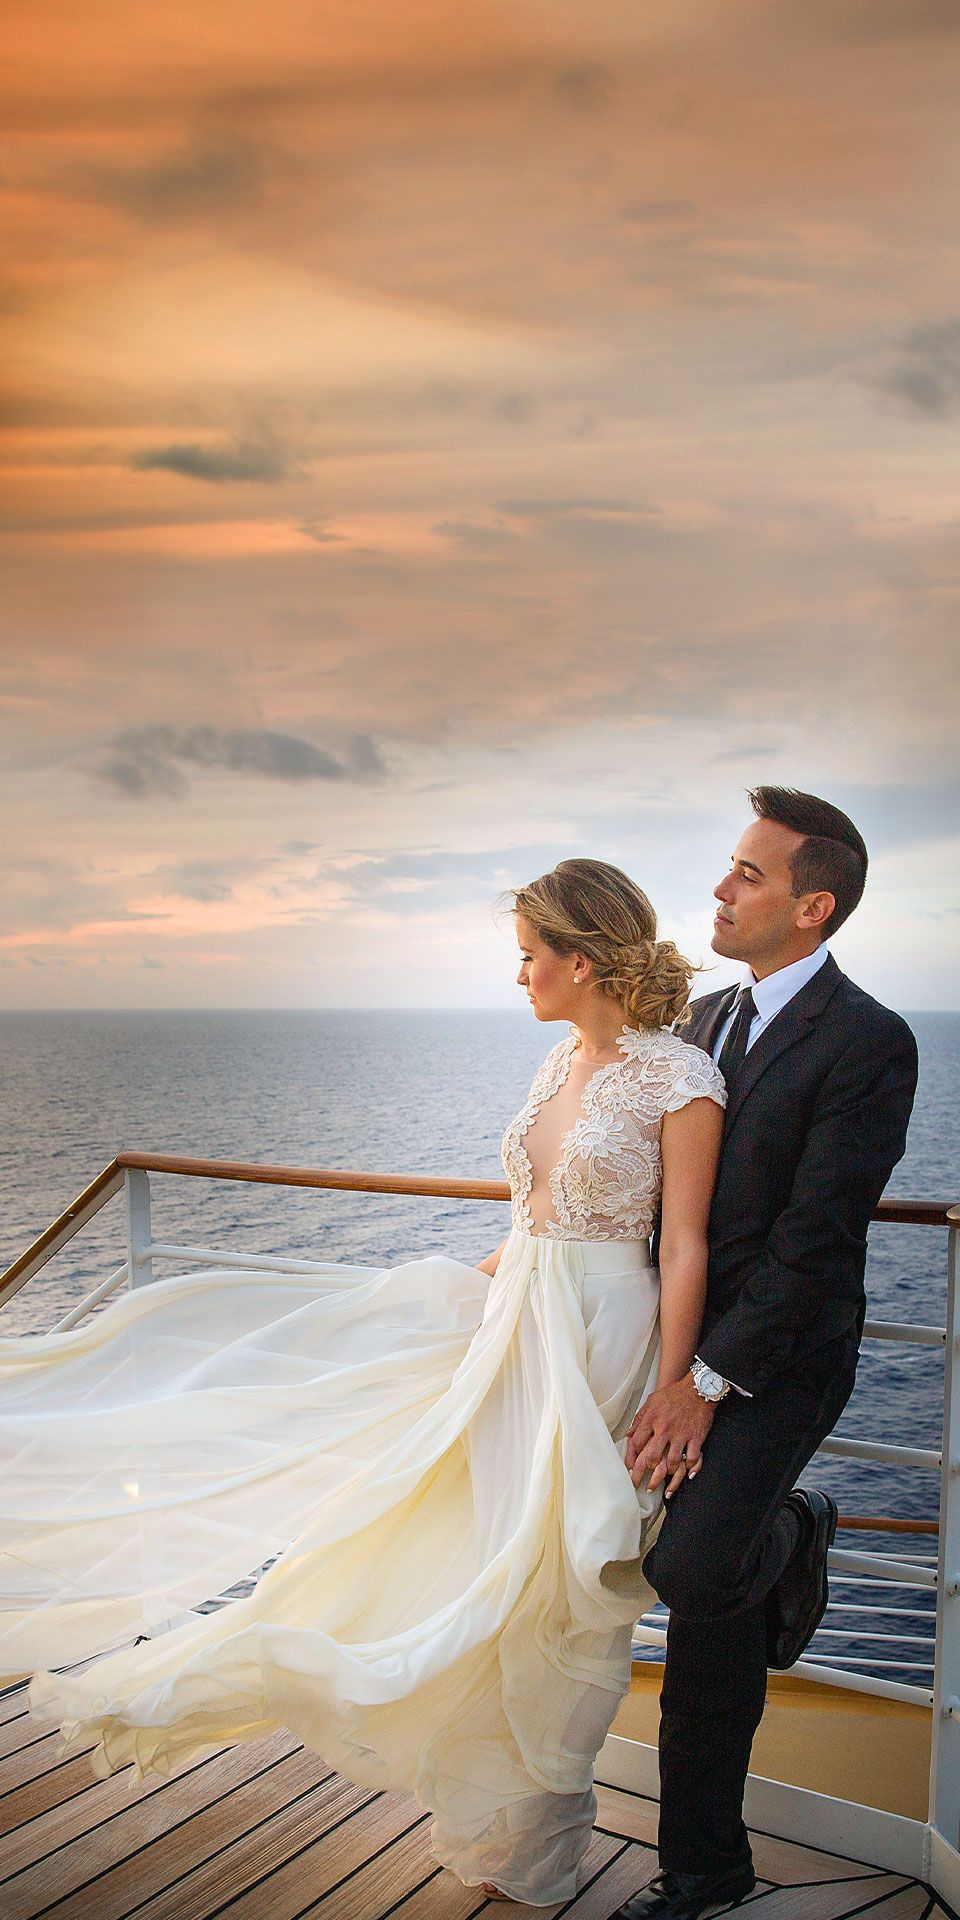 Royal Caribbean Cruise Wedding Celebrate With A Seaside Romance At Your Destination Or Onboard The Ship In 2020 Cruise Wedding Royal Caribbean Cruise Royal Caribbean